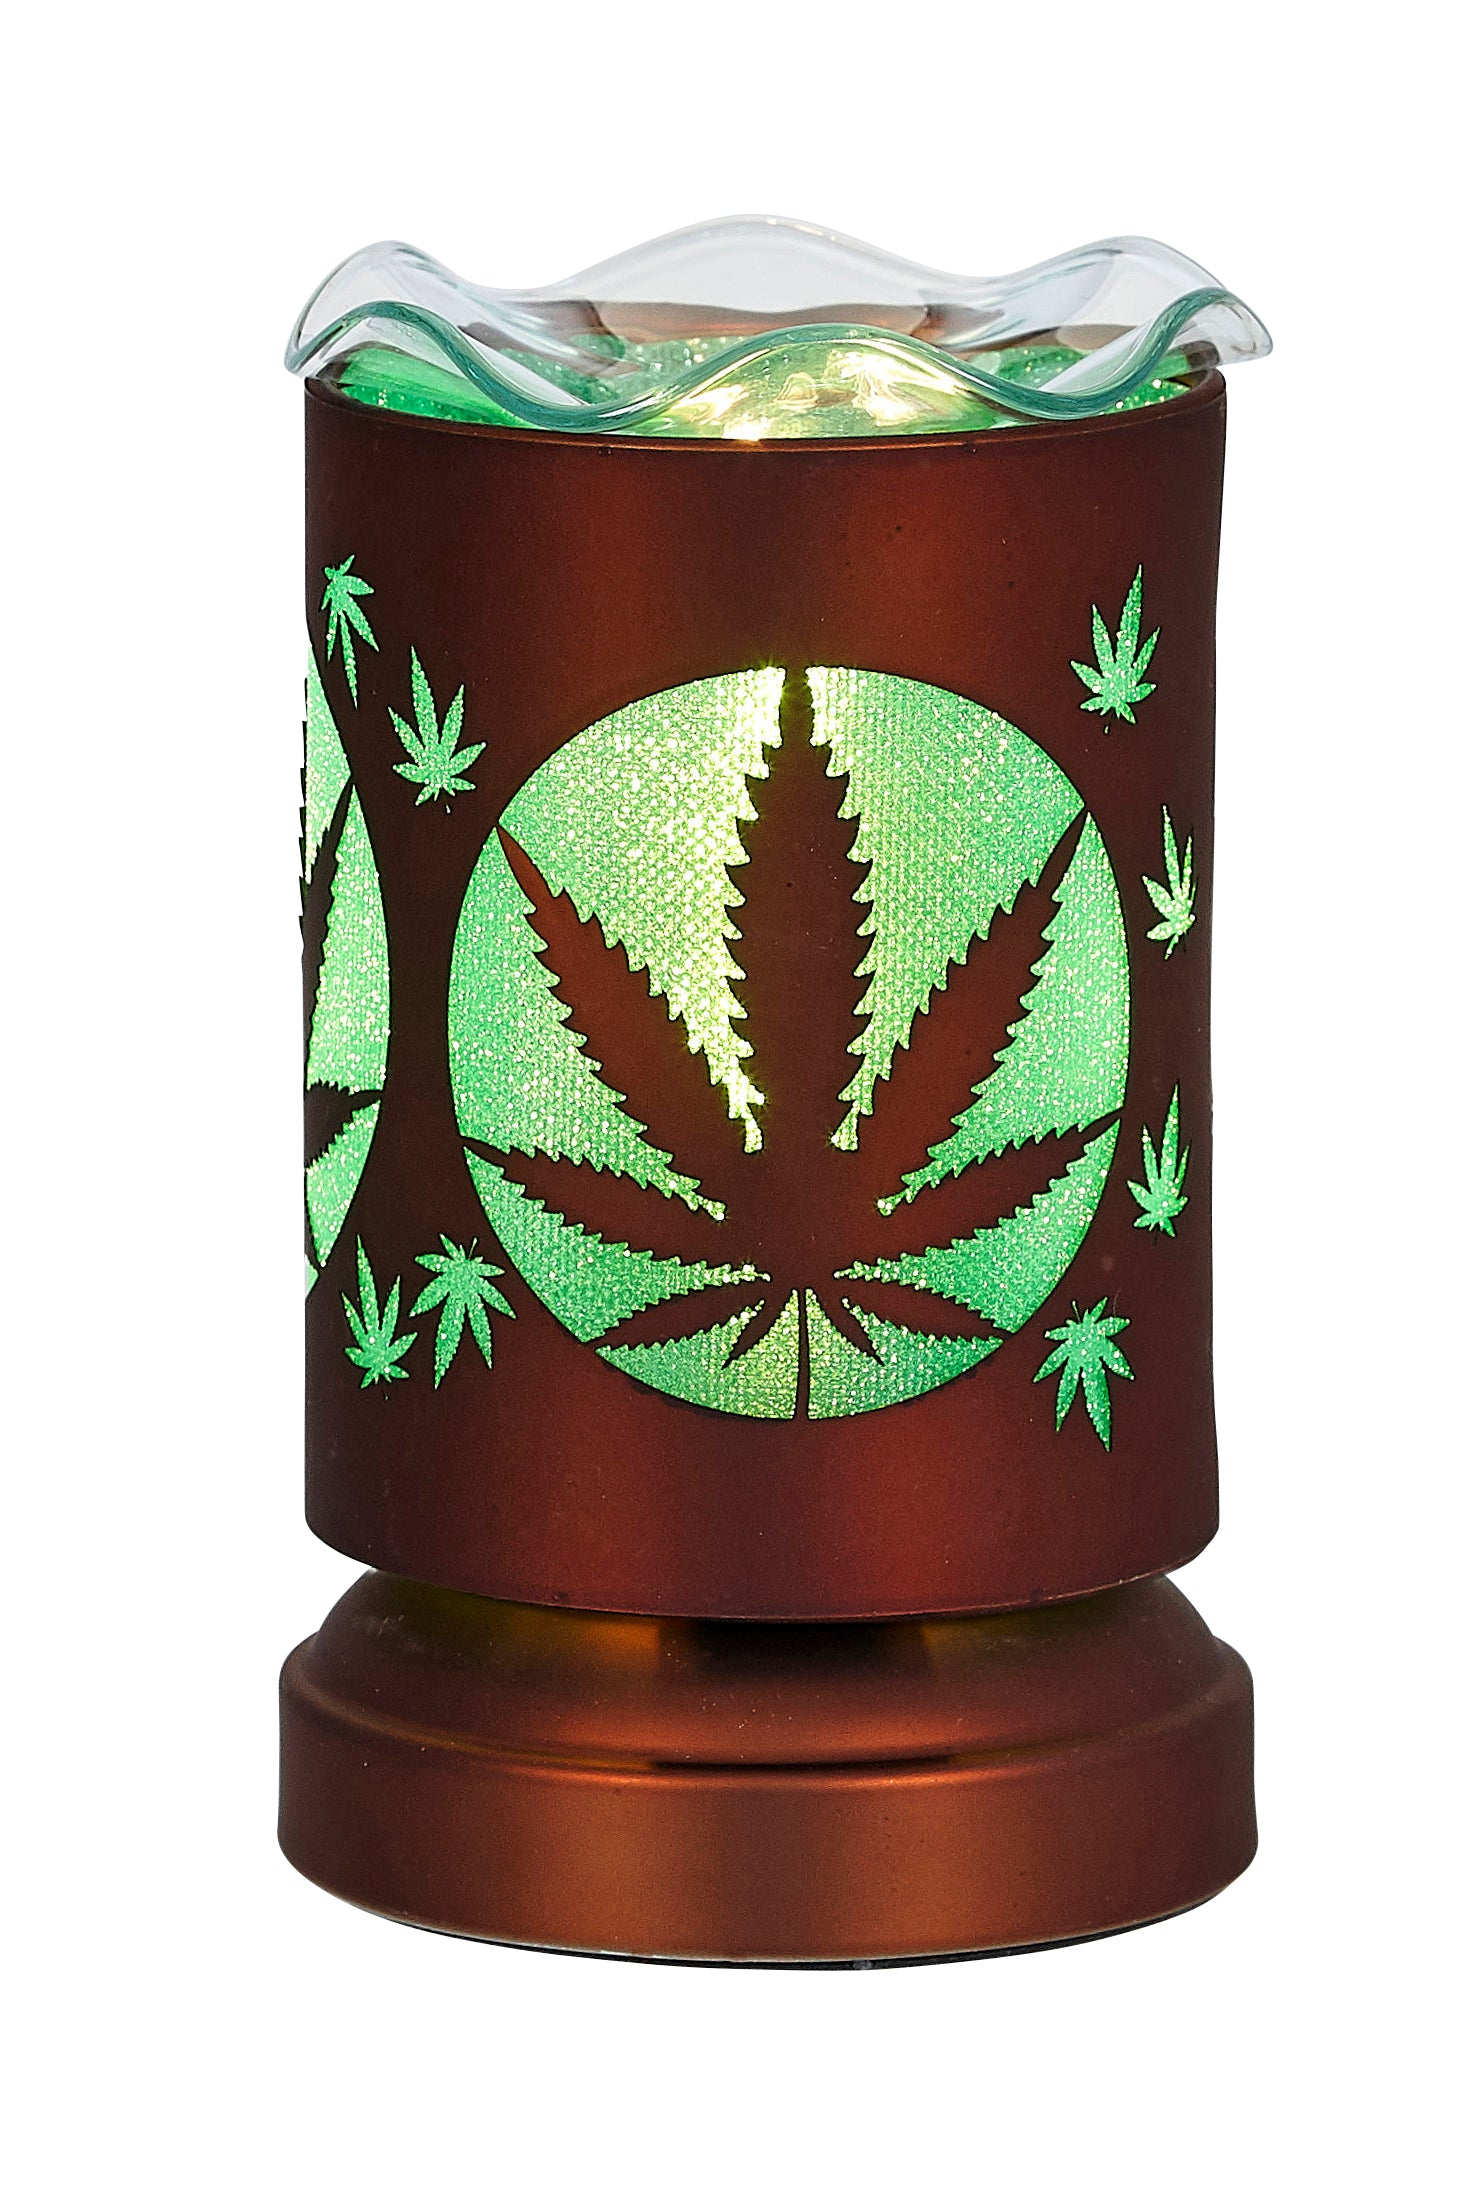 Fragrance Oils & Wax Ceramic Burner Warmer Cannabis Cooper